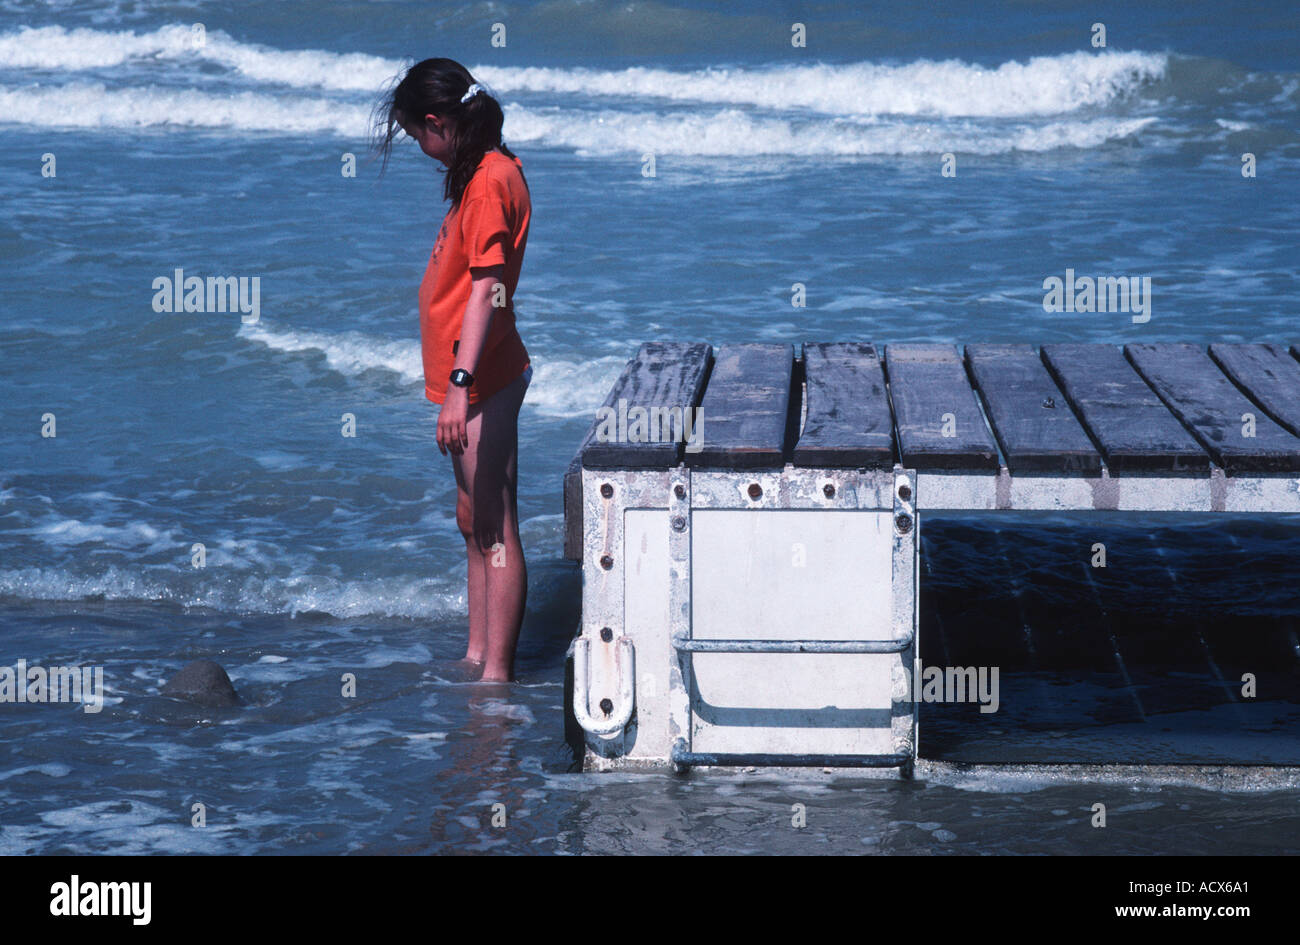 Teenage girl in an orange teeshirt standing beside a pontoon on a beach with white breakers in the background - Stock Image